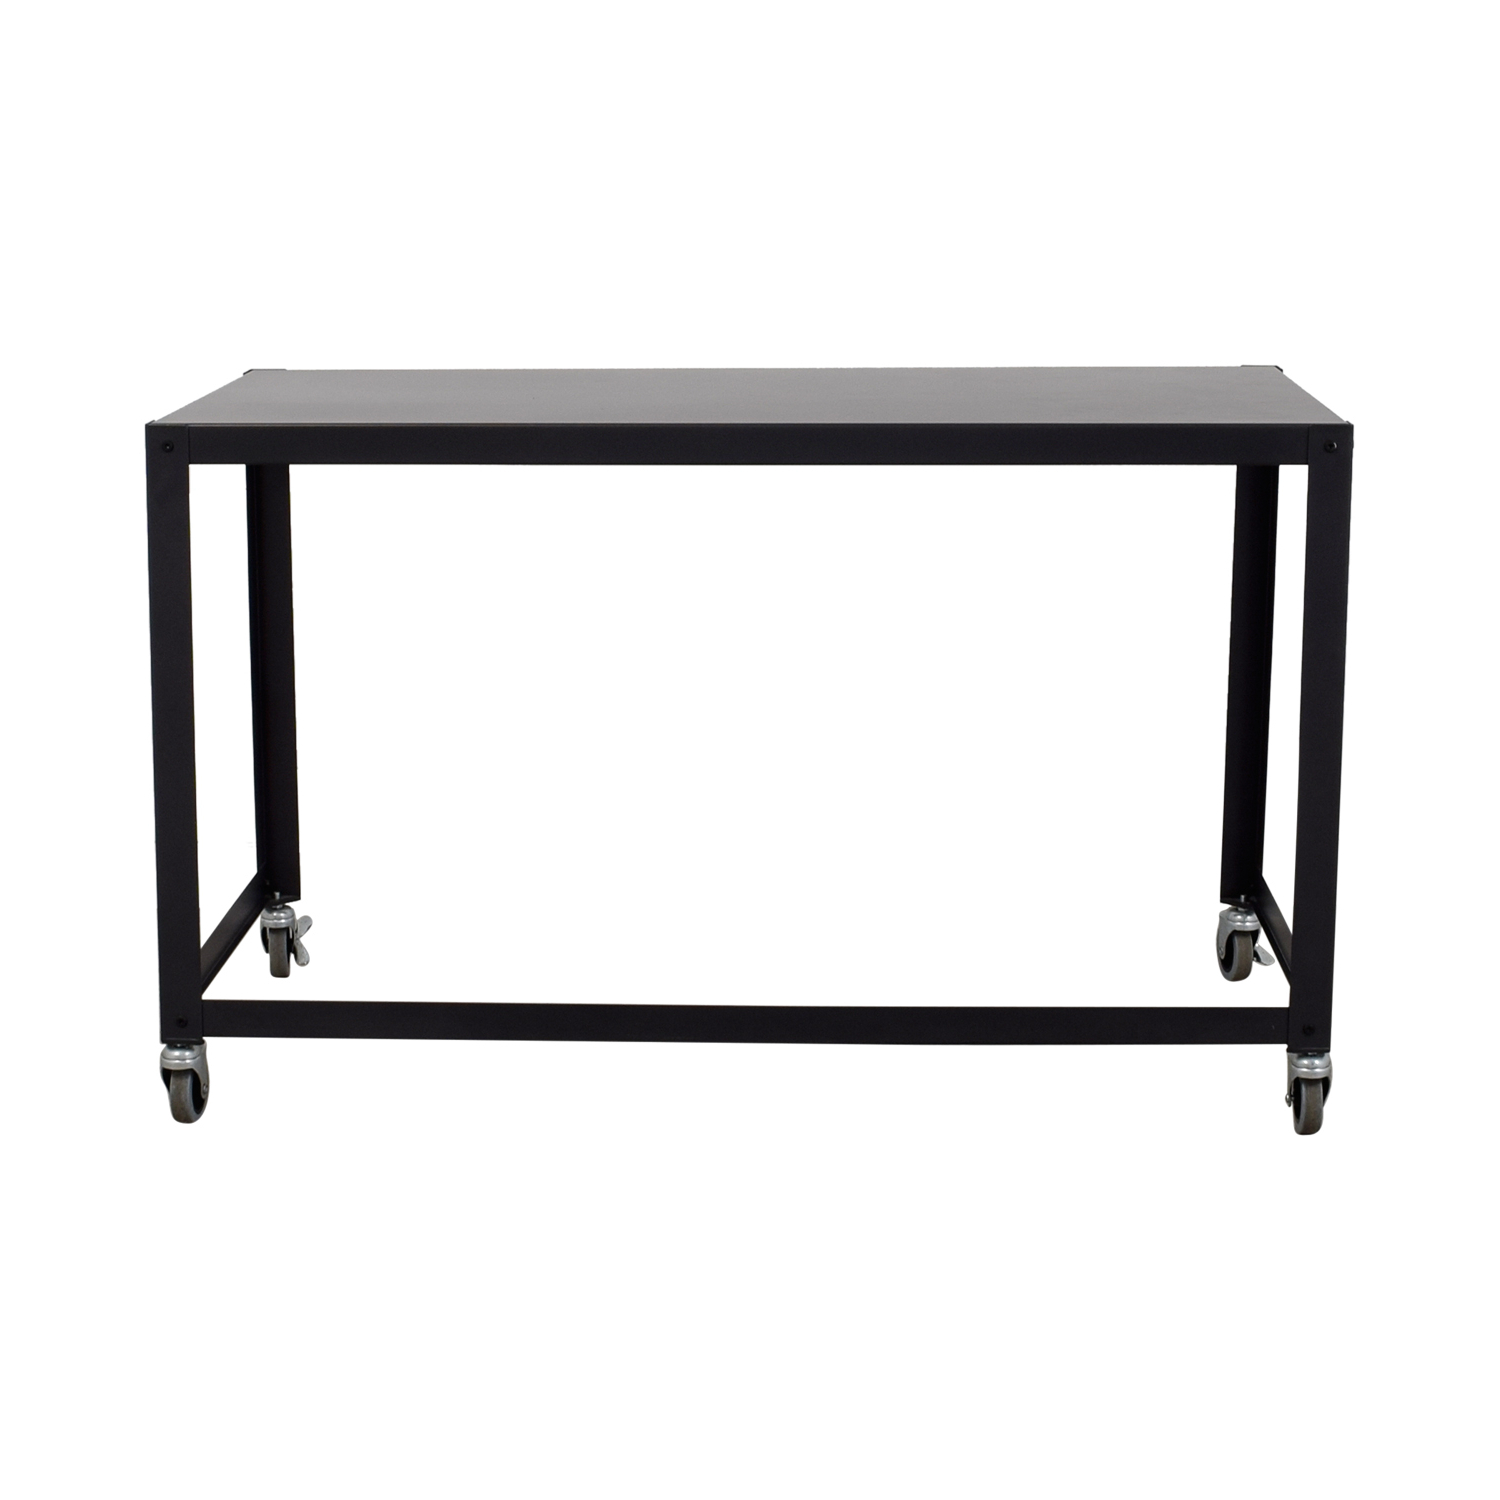 [%44% Off – Cb2 Cb2 Go Cart Rolling Desk / Tables Within 2019 Go Cart White Rolling Coffee Tables|Go Cart White Rolling Coffee Tables Regarding Current 44% Off – Cb2 Cb2 Go Cart Rolling Desk / Tables|Most Recently Released Go Cart White Rolling Coffee Tables With Regard To 44% Off – Cb2 Cb2 Go Cart Rolling Desk / Tables|Widely Used 44% Off – Cb2 Cb2 Go Cart Rolling Desk / Tables In Go Cart White Rolling Coffee Tables%] (View 14 of 20)